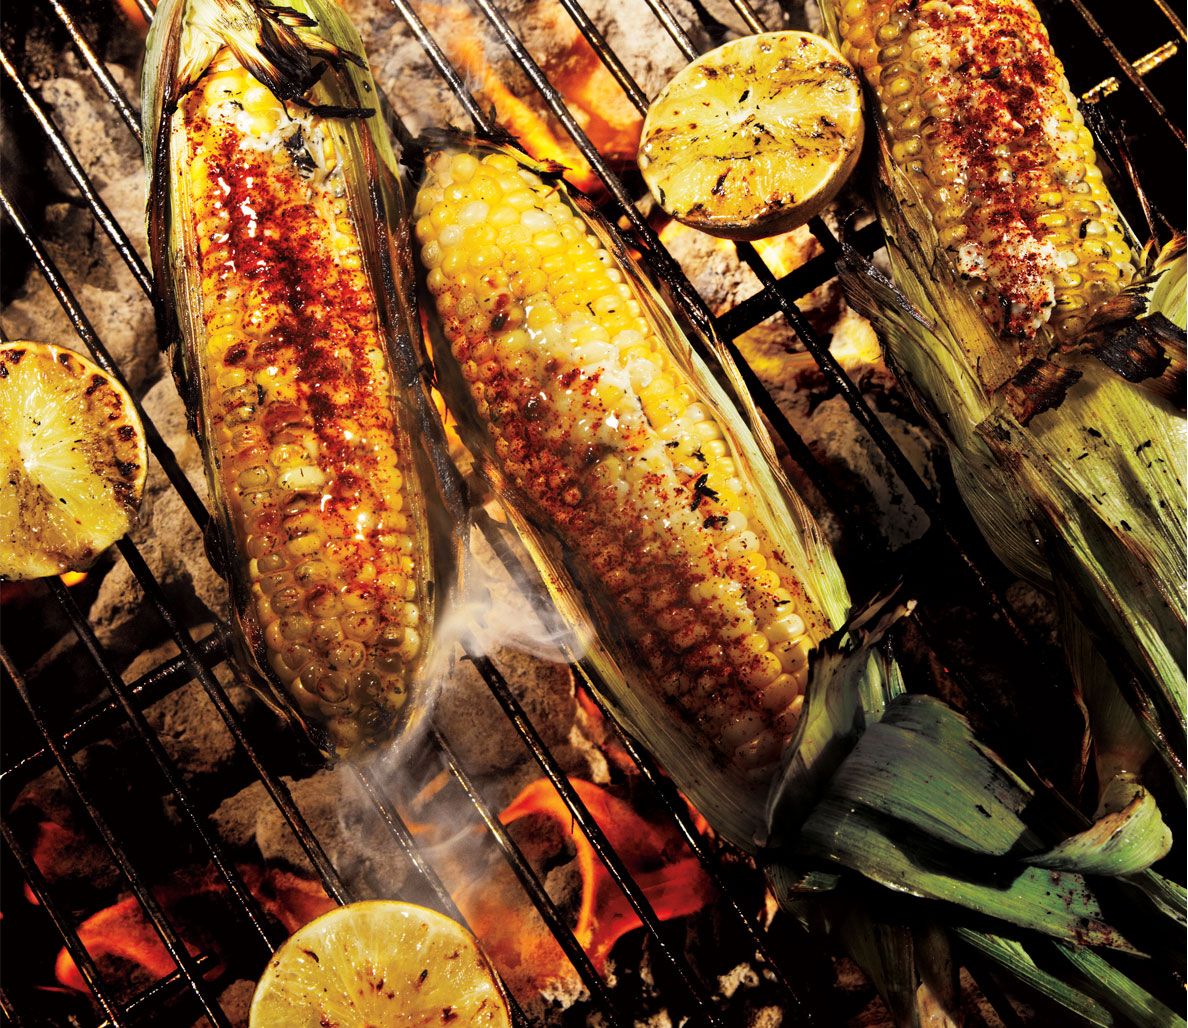 Cooking tips: Four delicious ways to grill corn